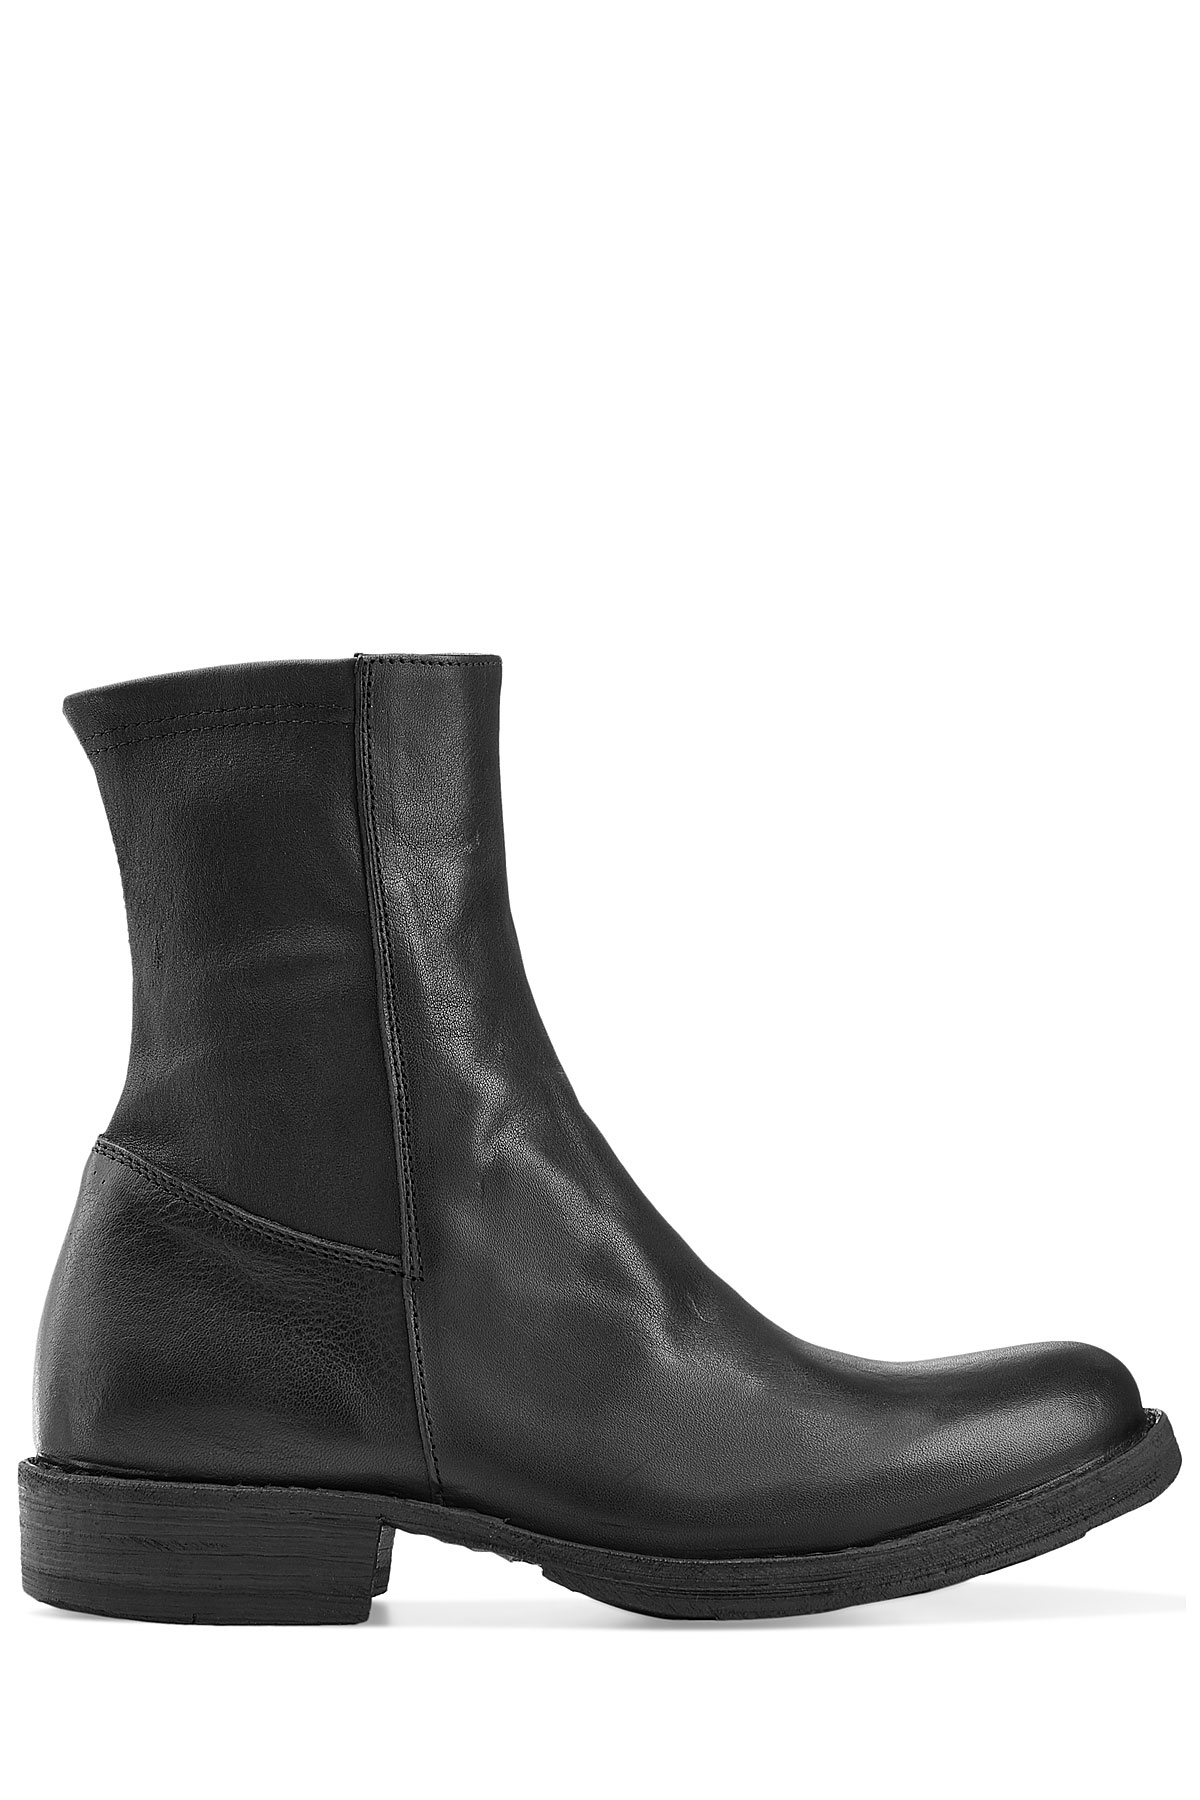 fiorentini baker eternity ebe leather ankle boots. Black Bedroom Furniture Sets. Home Design Ideas